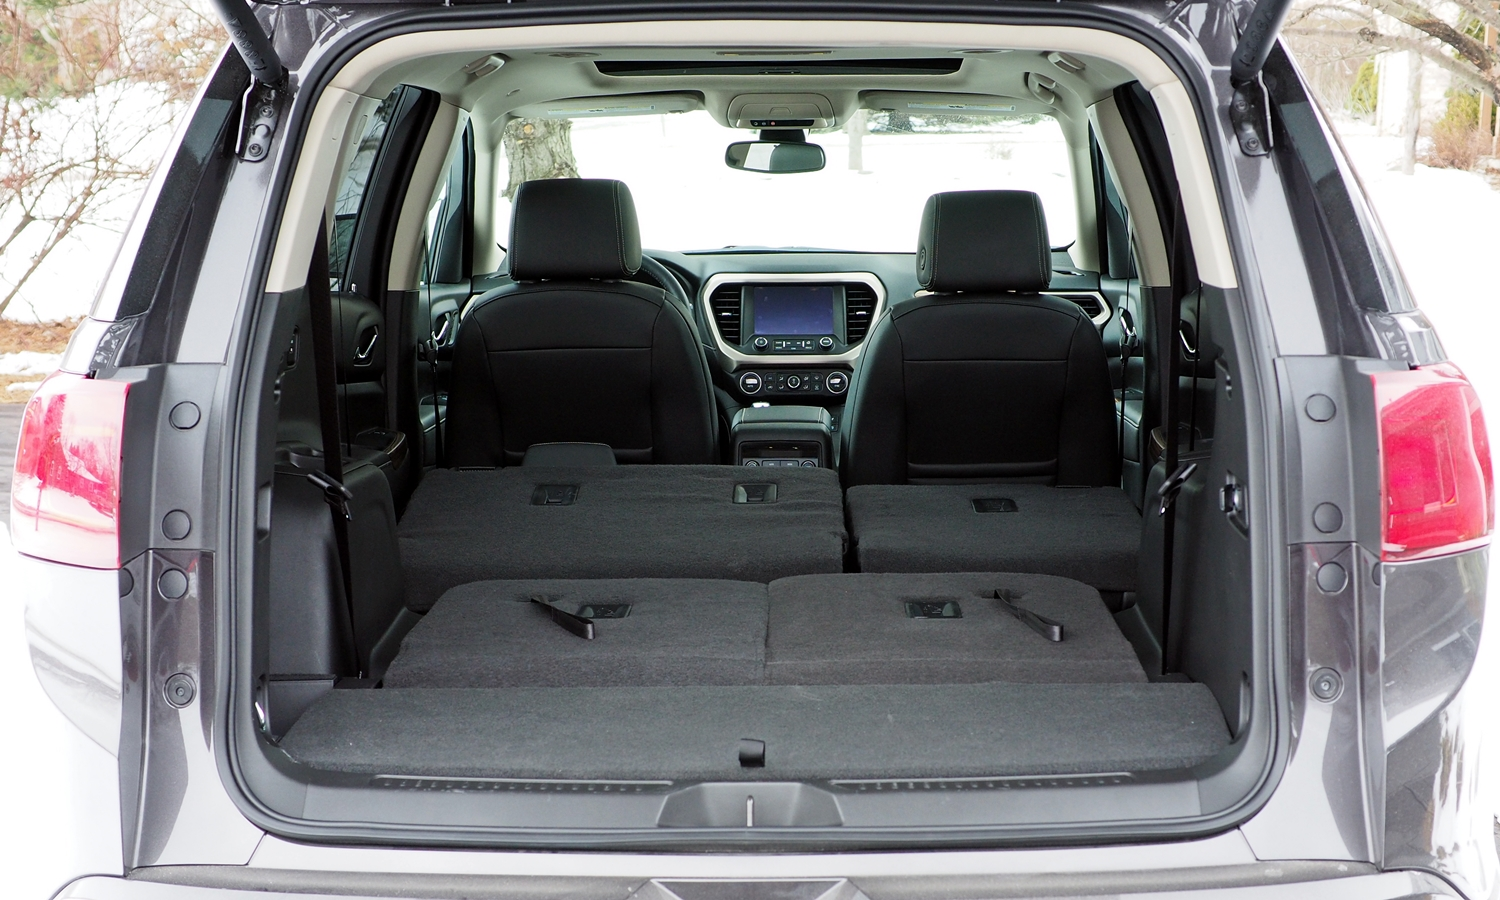 GMC Acadia Photos: 2017 GMC Acadia cargo area both rows folded